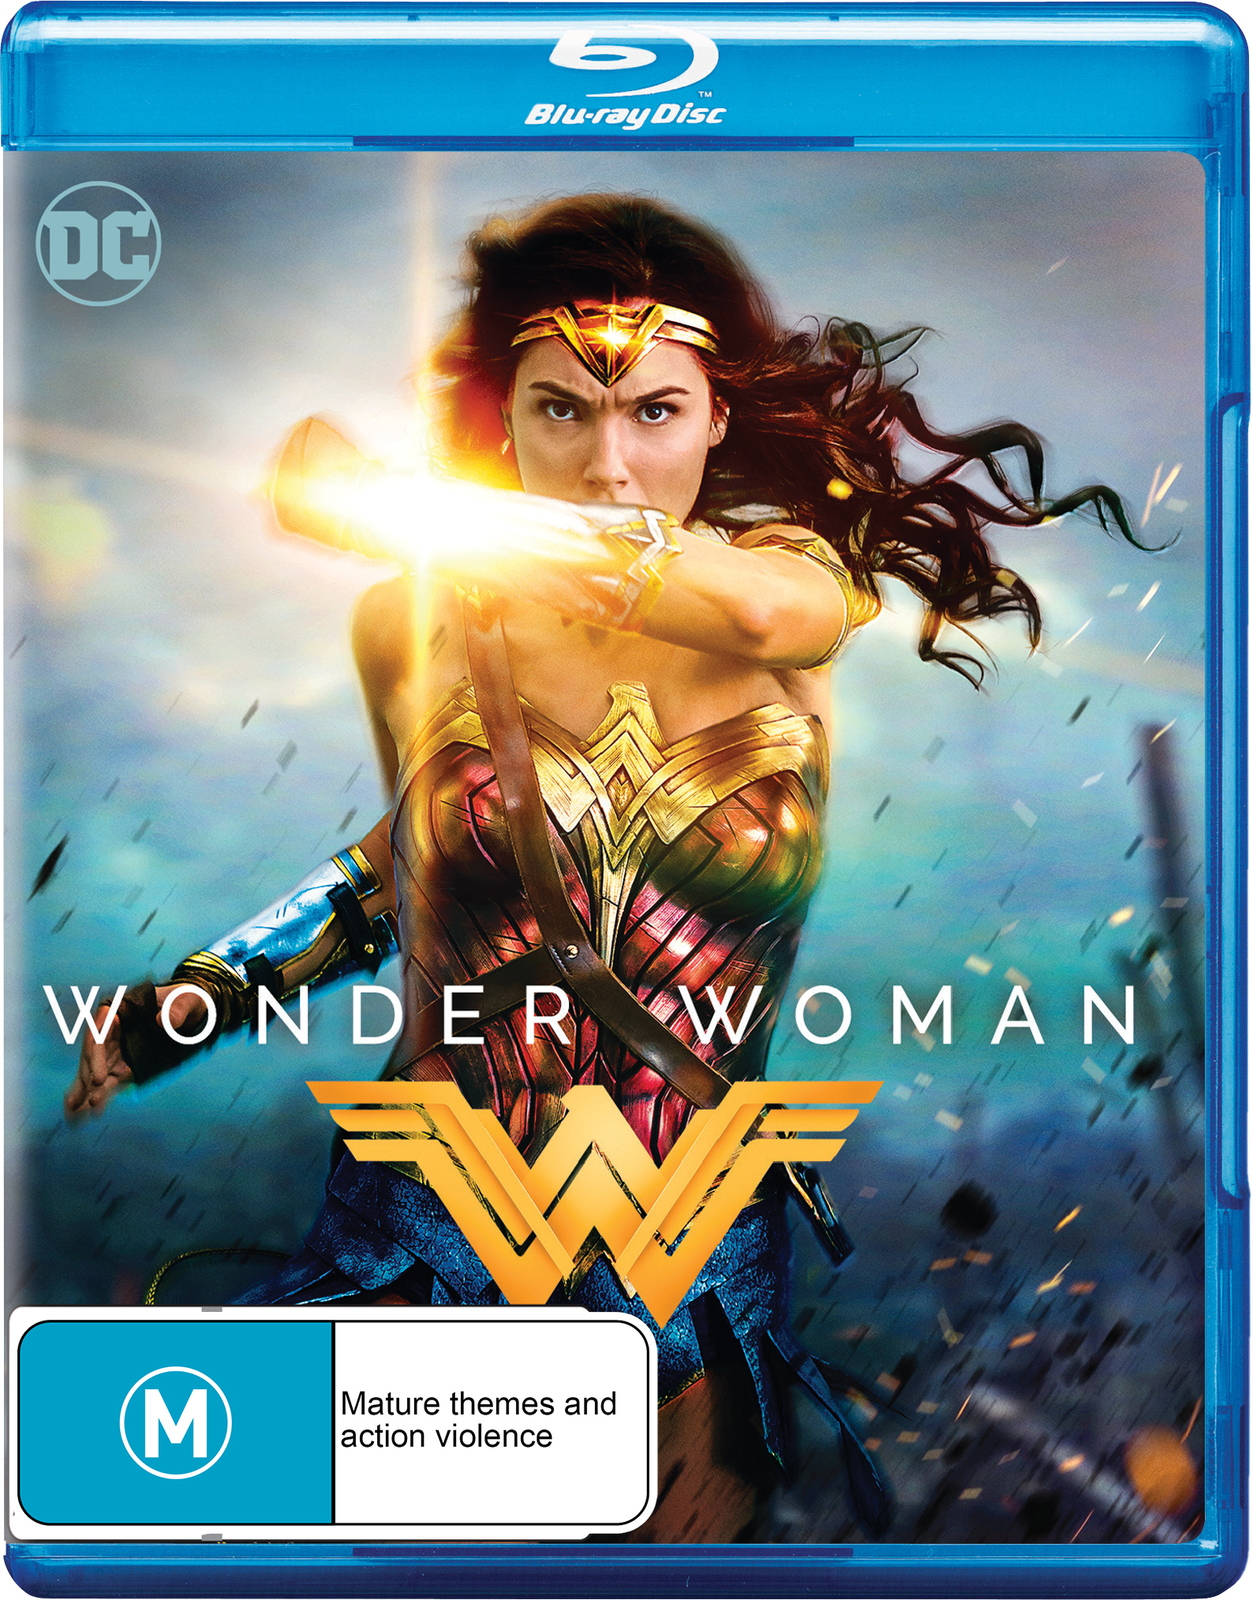 Wonder Woman (2017) on Blu-ray image